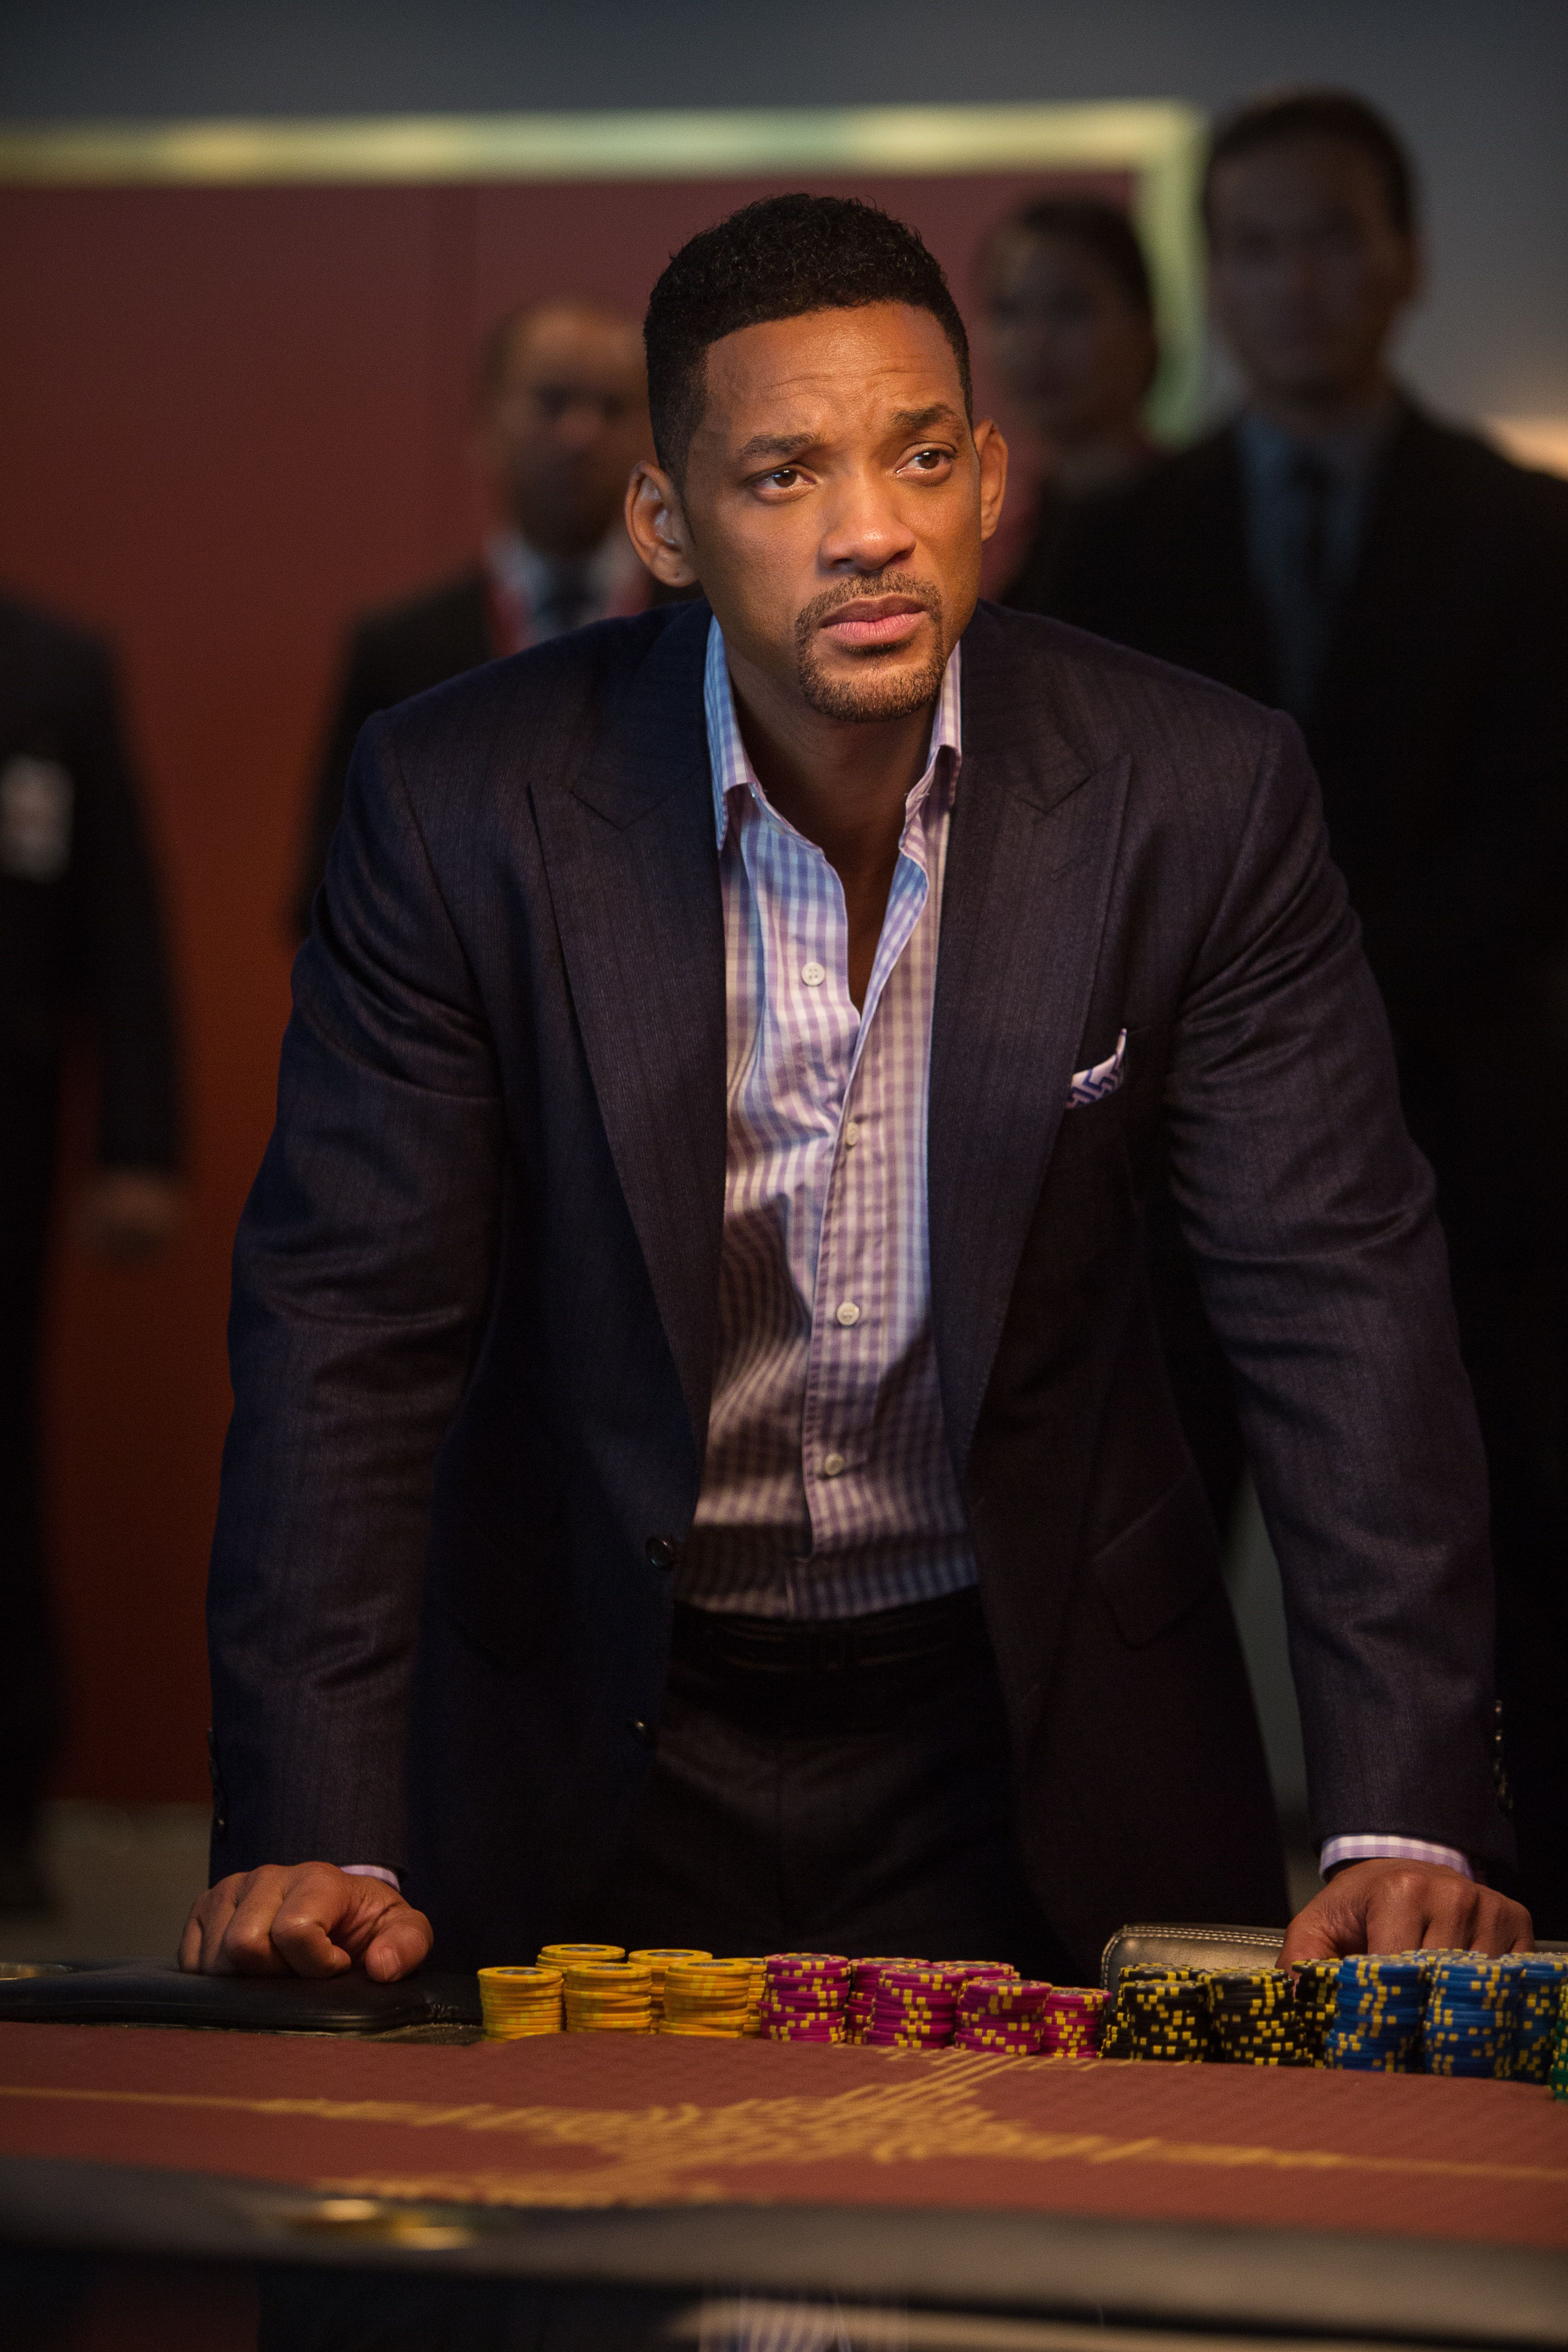 Focus will smith betting scene hairstyles online betting on politics